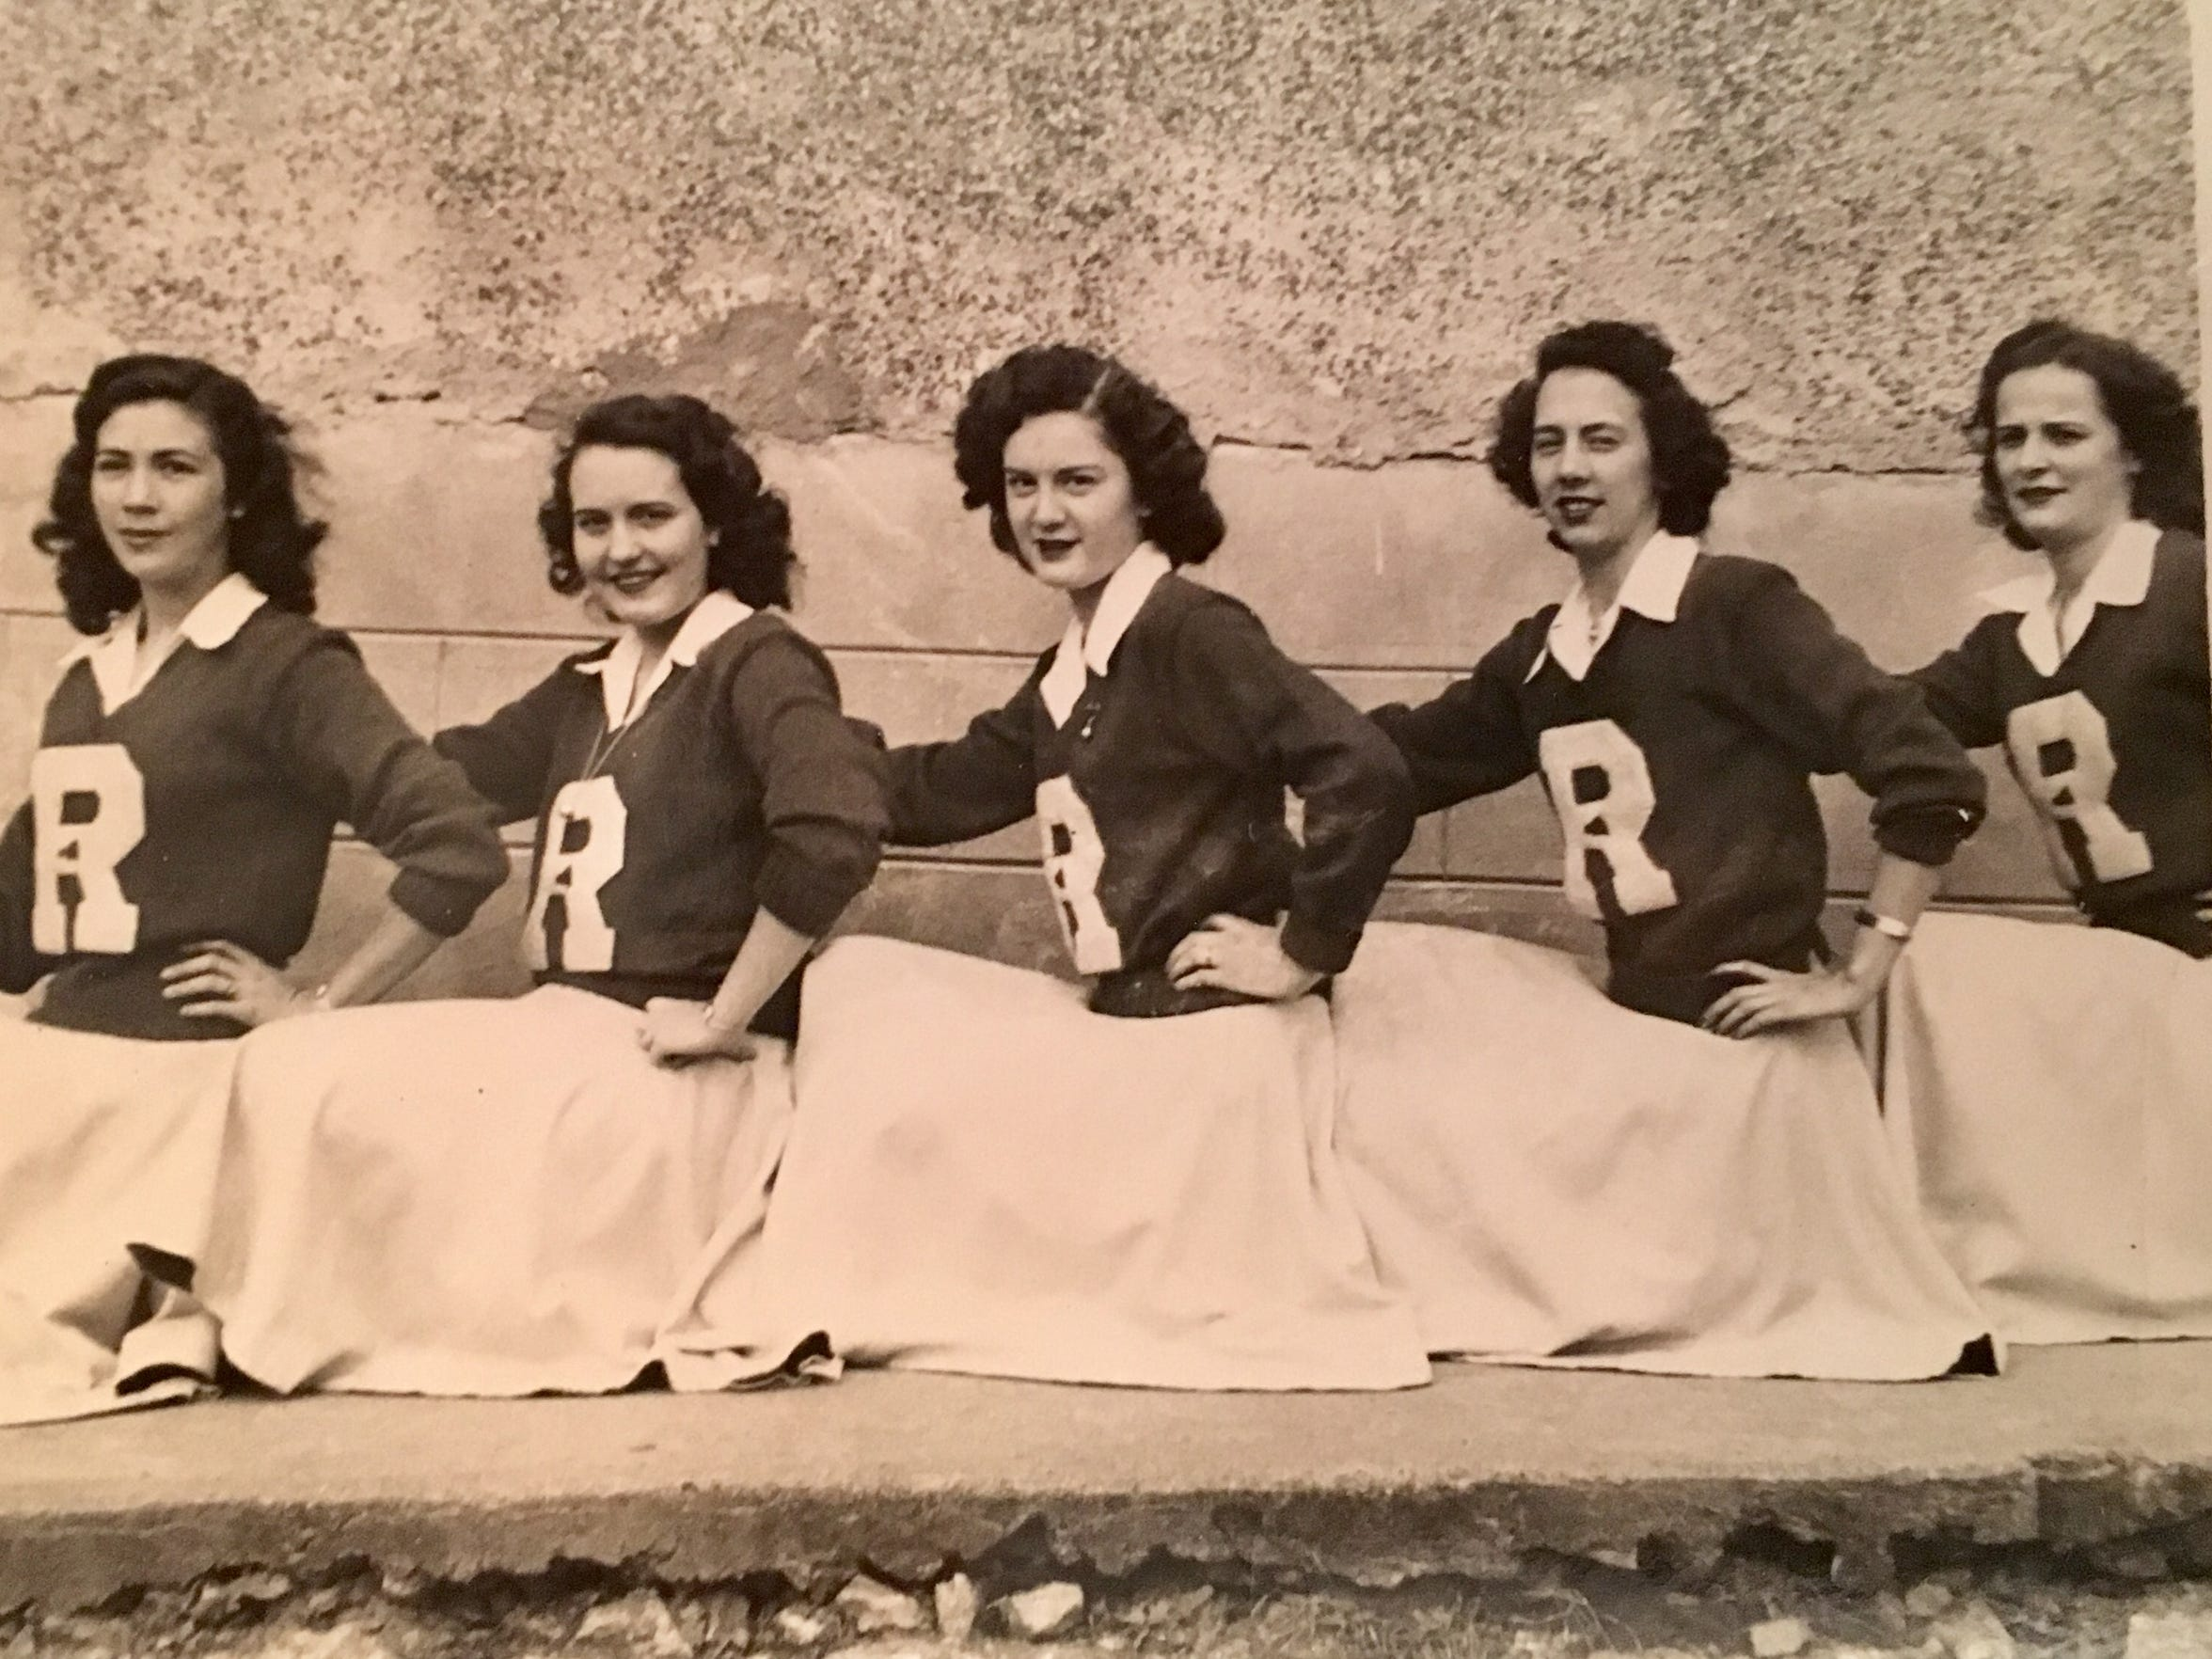 Cheerleaders for the Class of 1950 at Renaker High School included Helen Barnes, far right, who was valedictorian of her class.